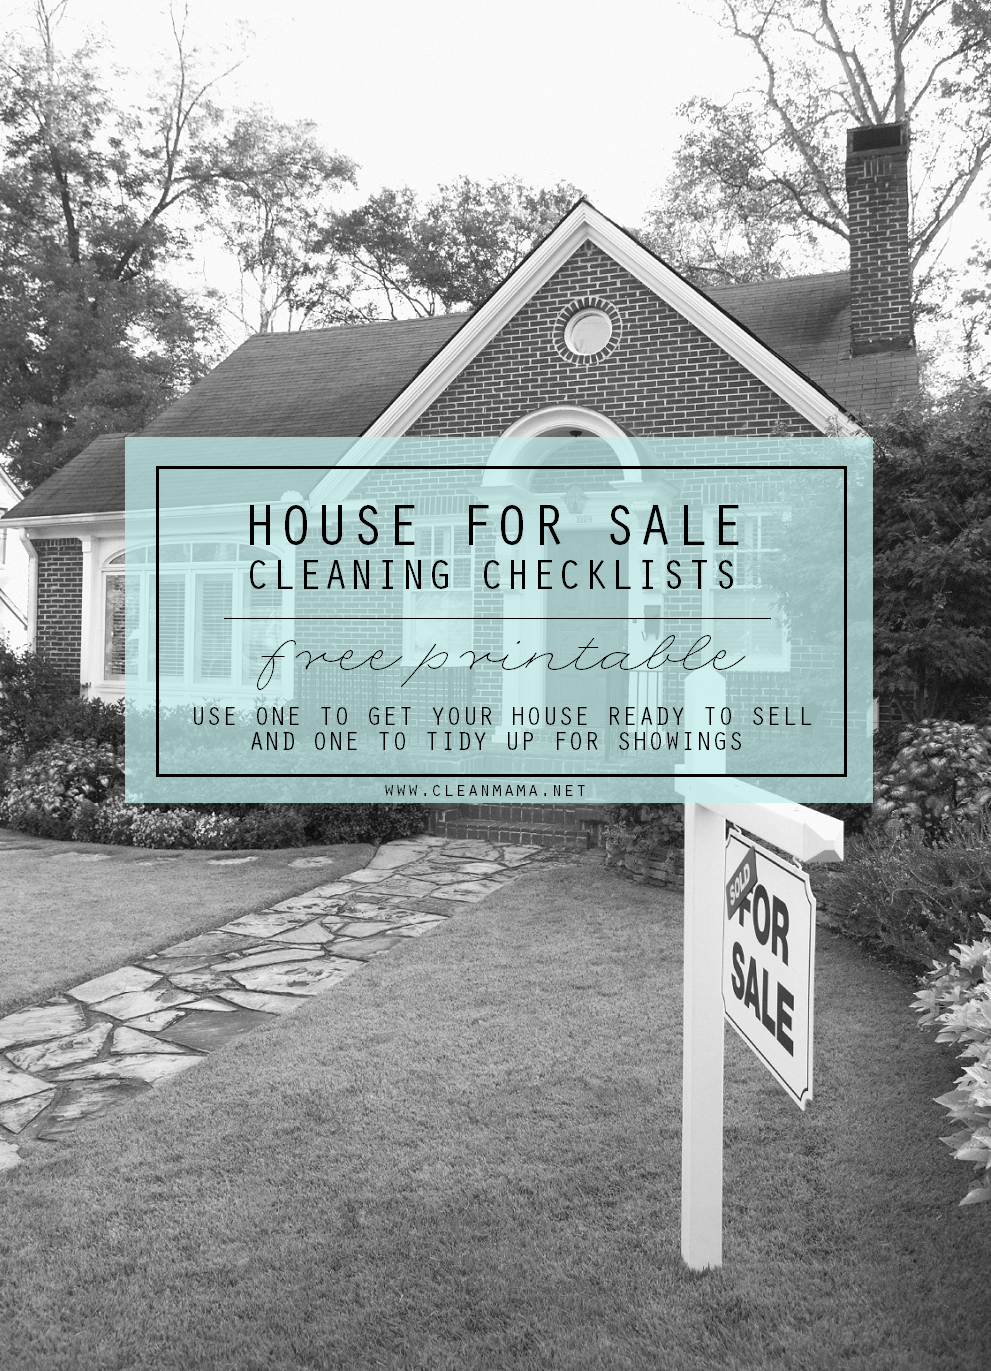 House for Sale Cleaning Checklists - free printable - via Clean Mama